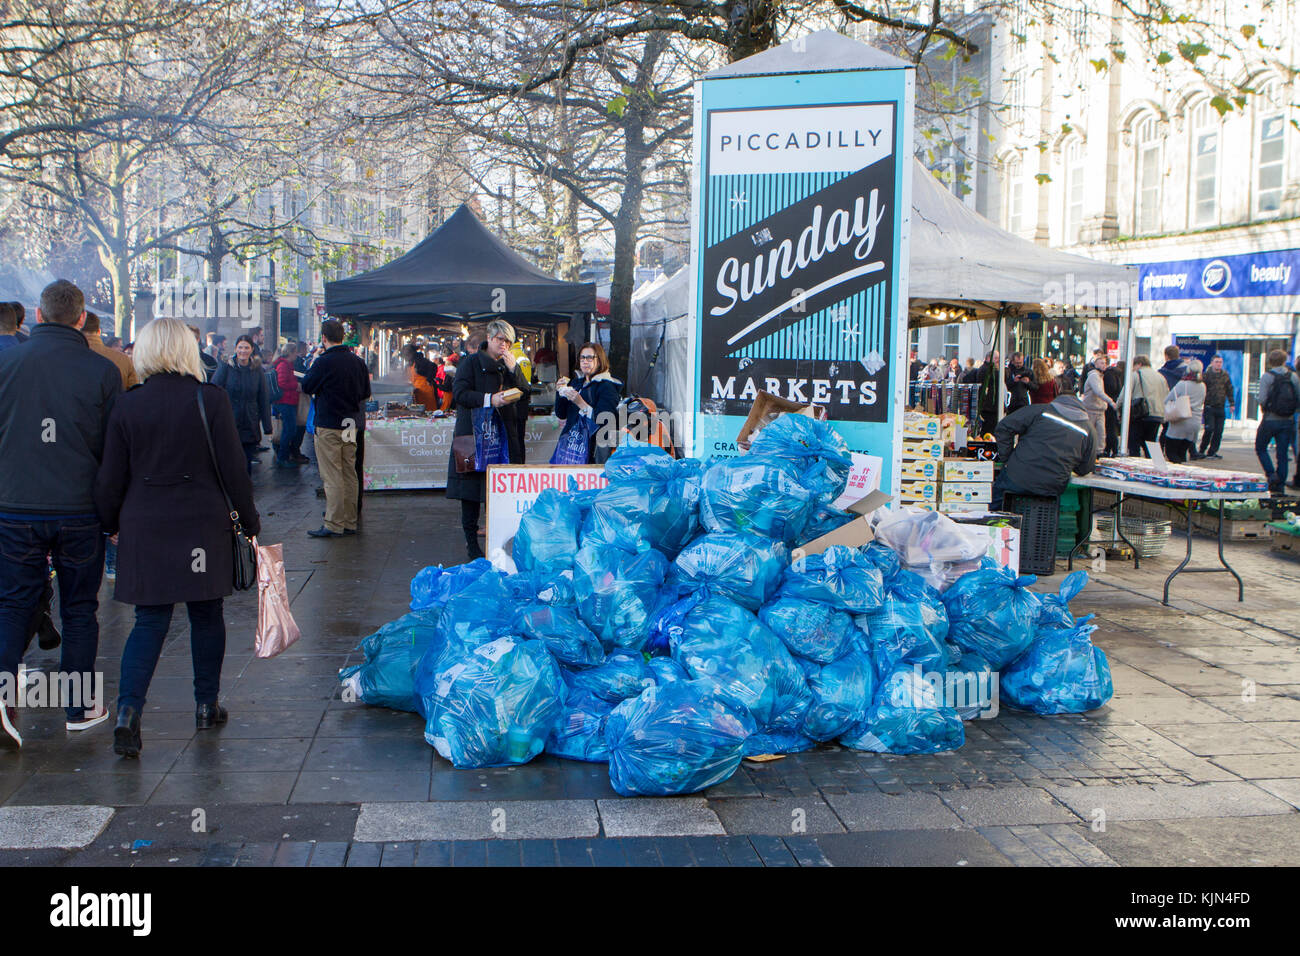 A pile of decaying bin bags and food waste rubbish next to Manchester Christmas market stalls Stock Photo